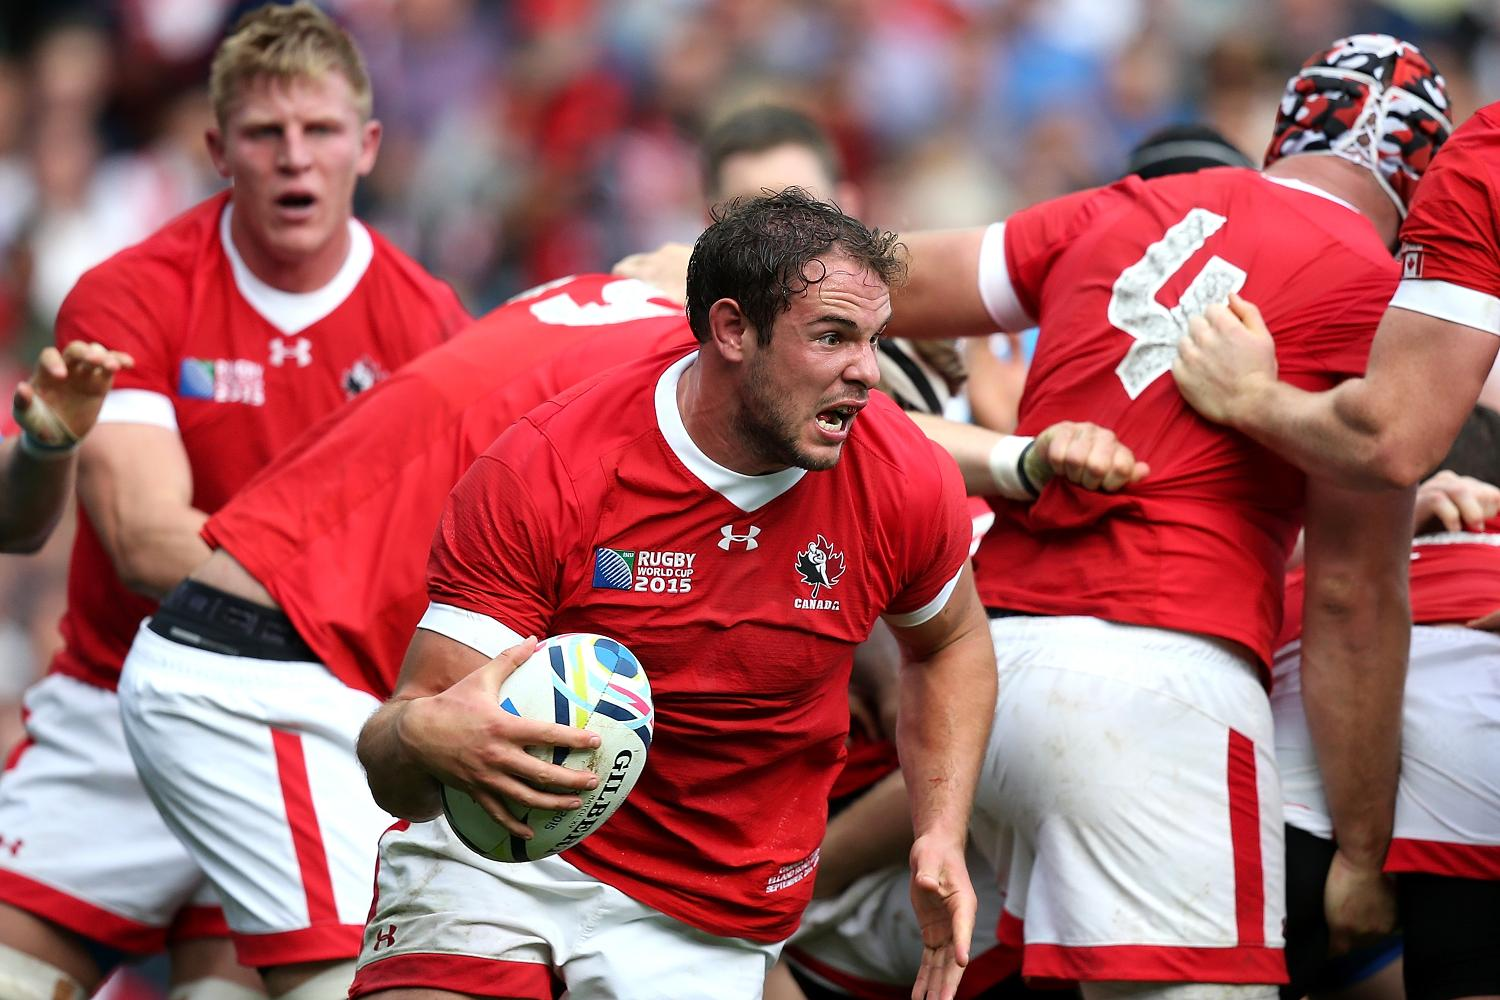 Italy v Canada - Group D: Rugby World Cup 2015